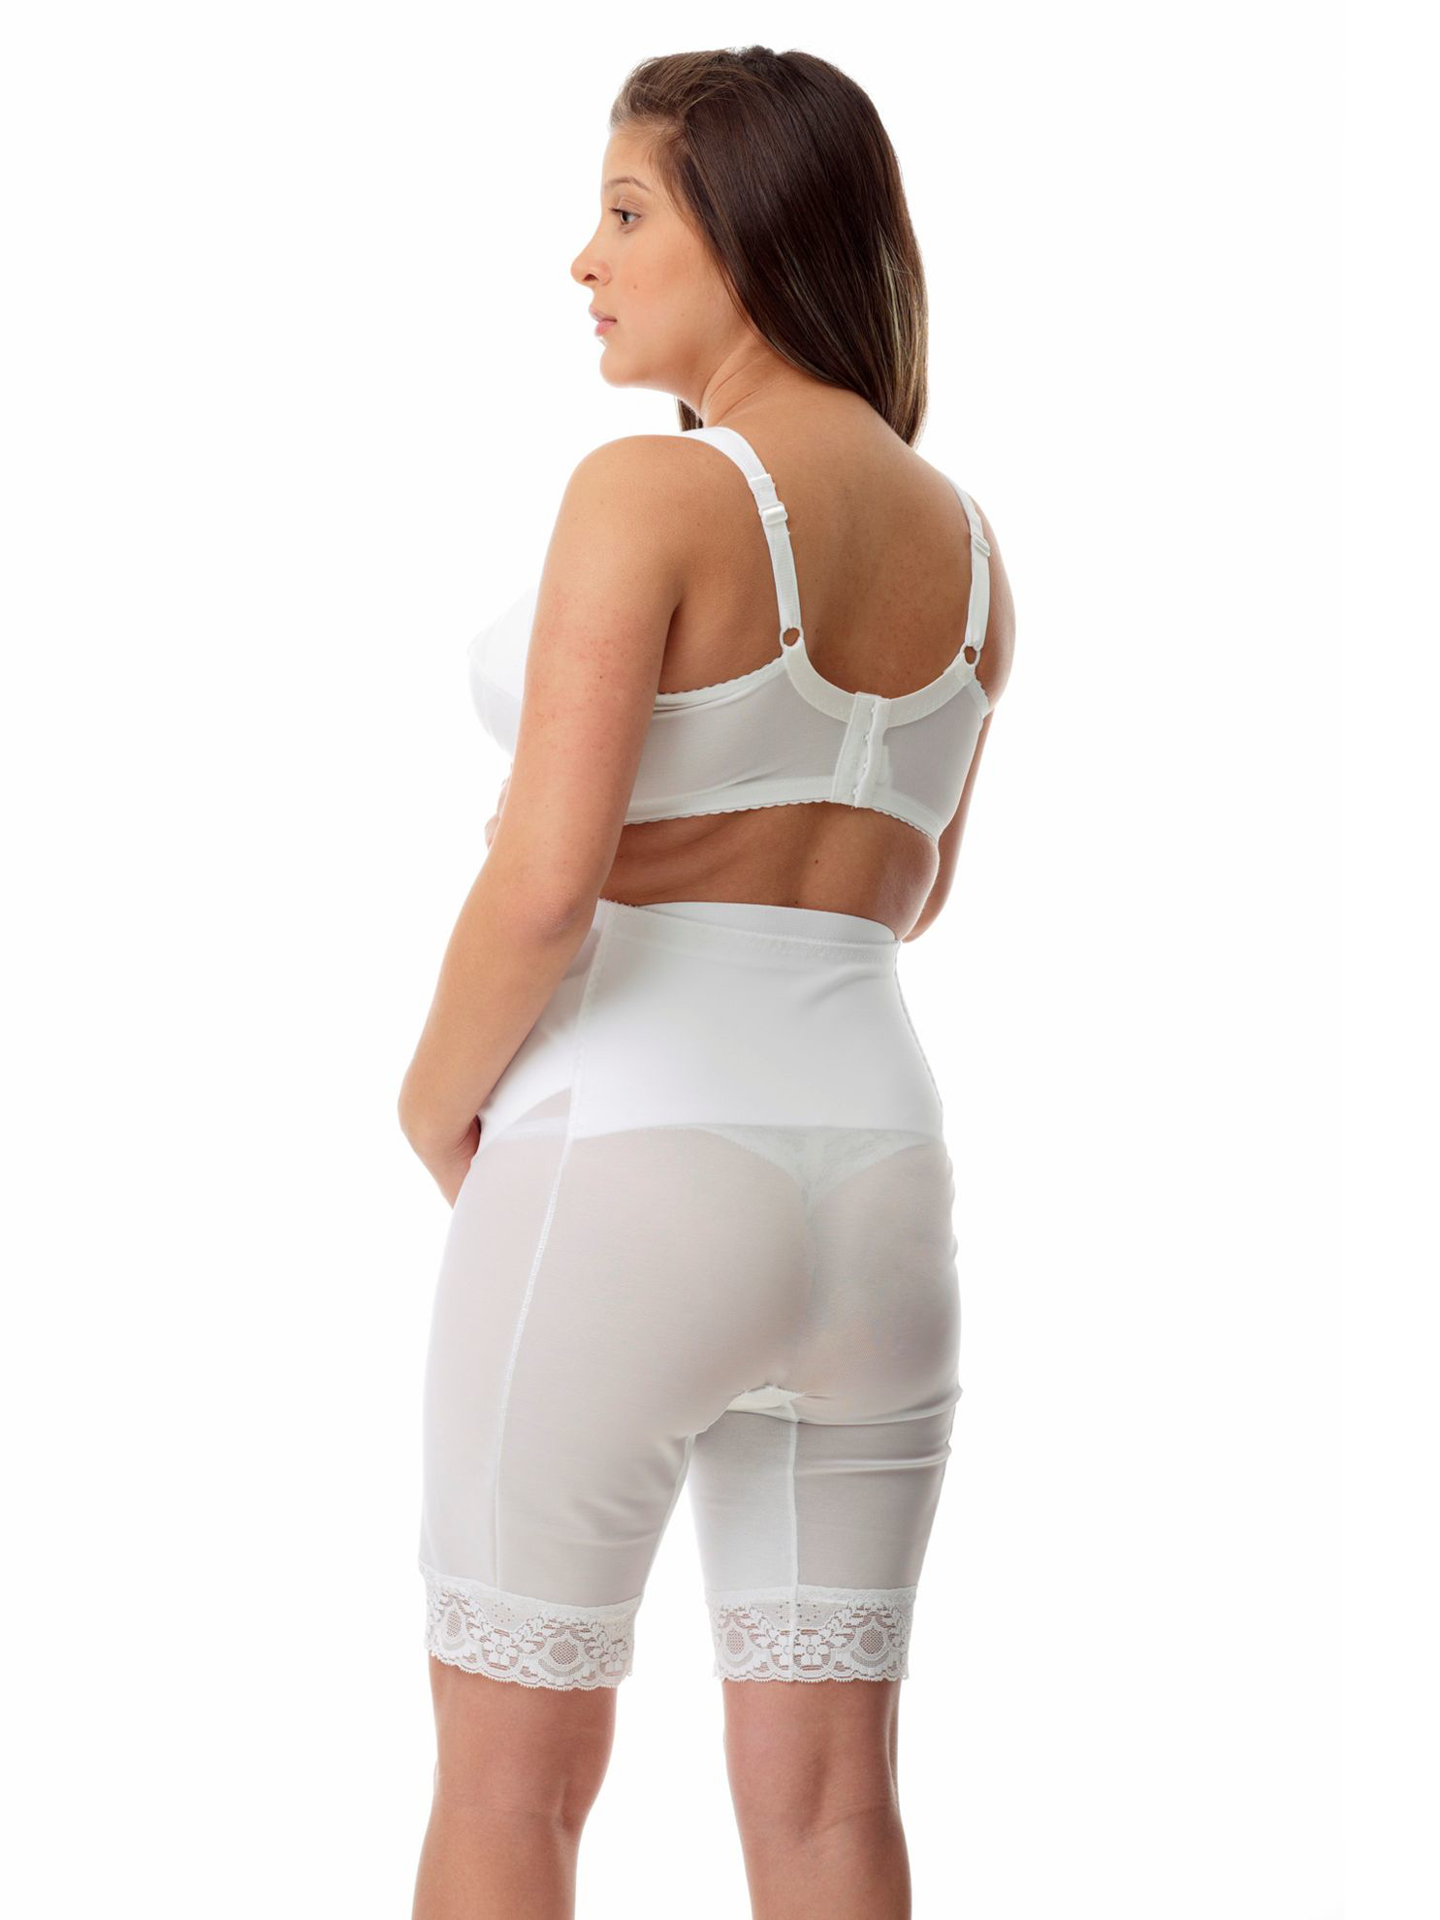 Picture of Maternity Back and Tummy Support Girdle